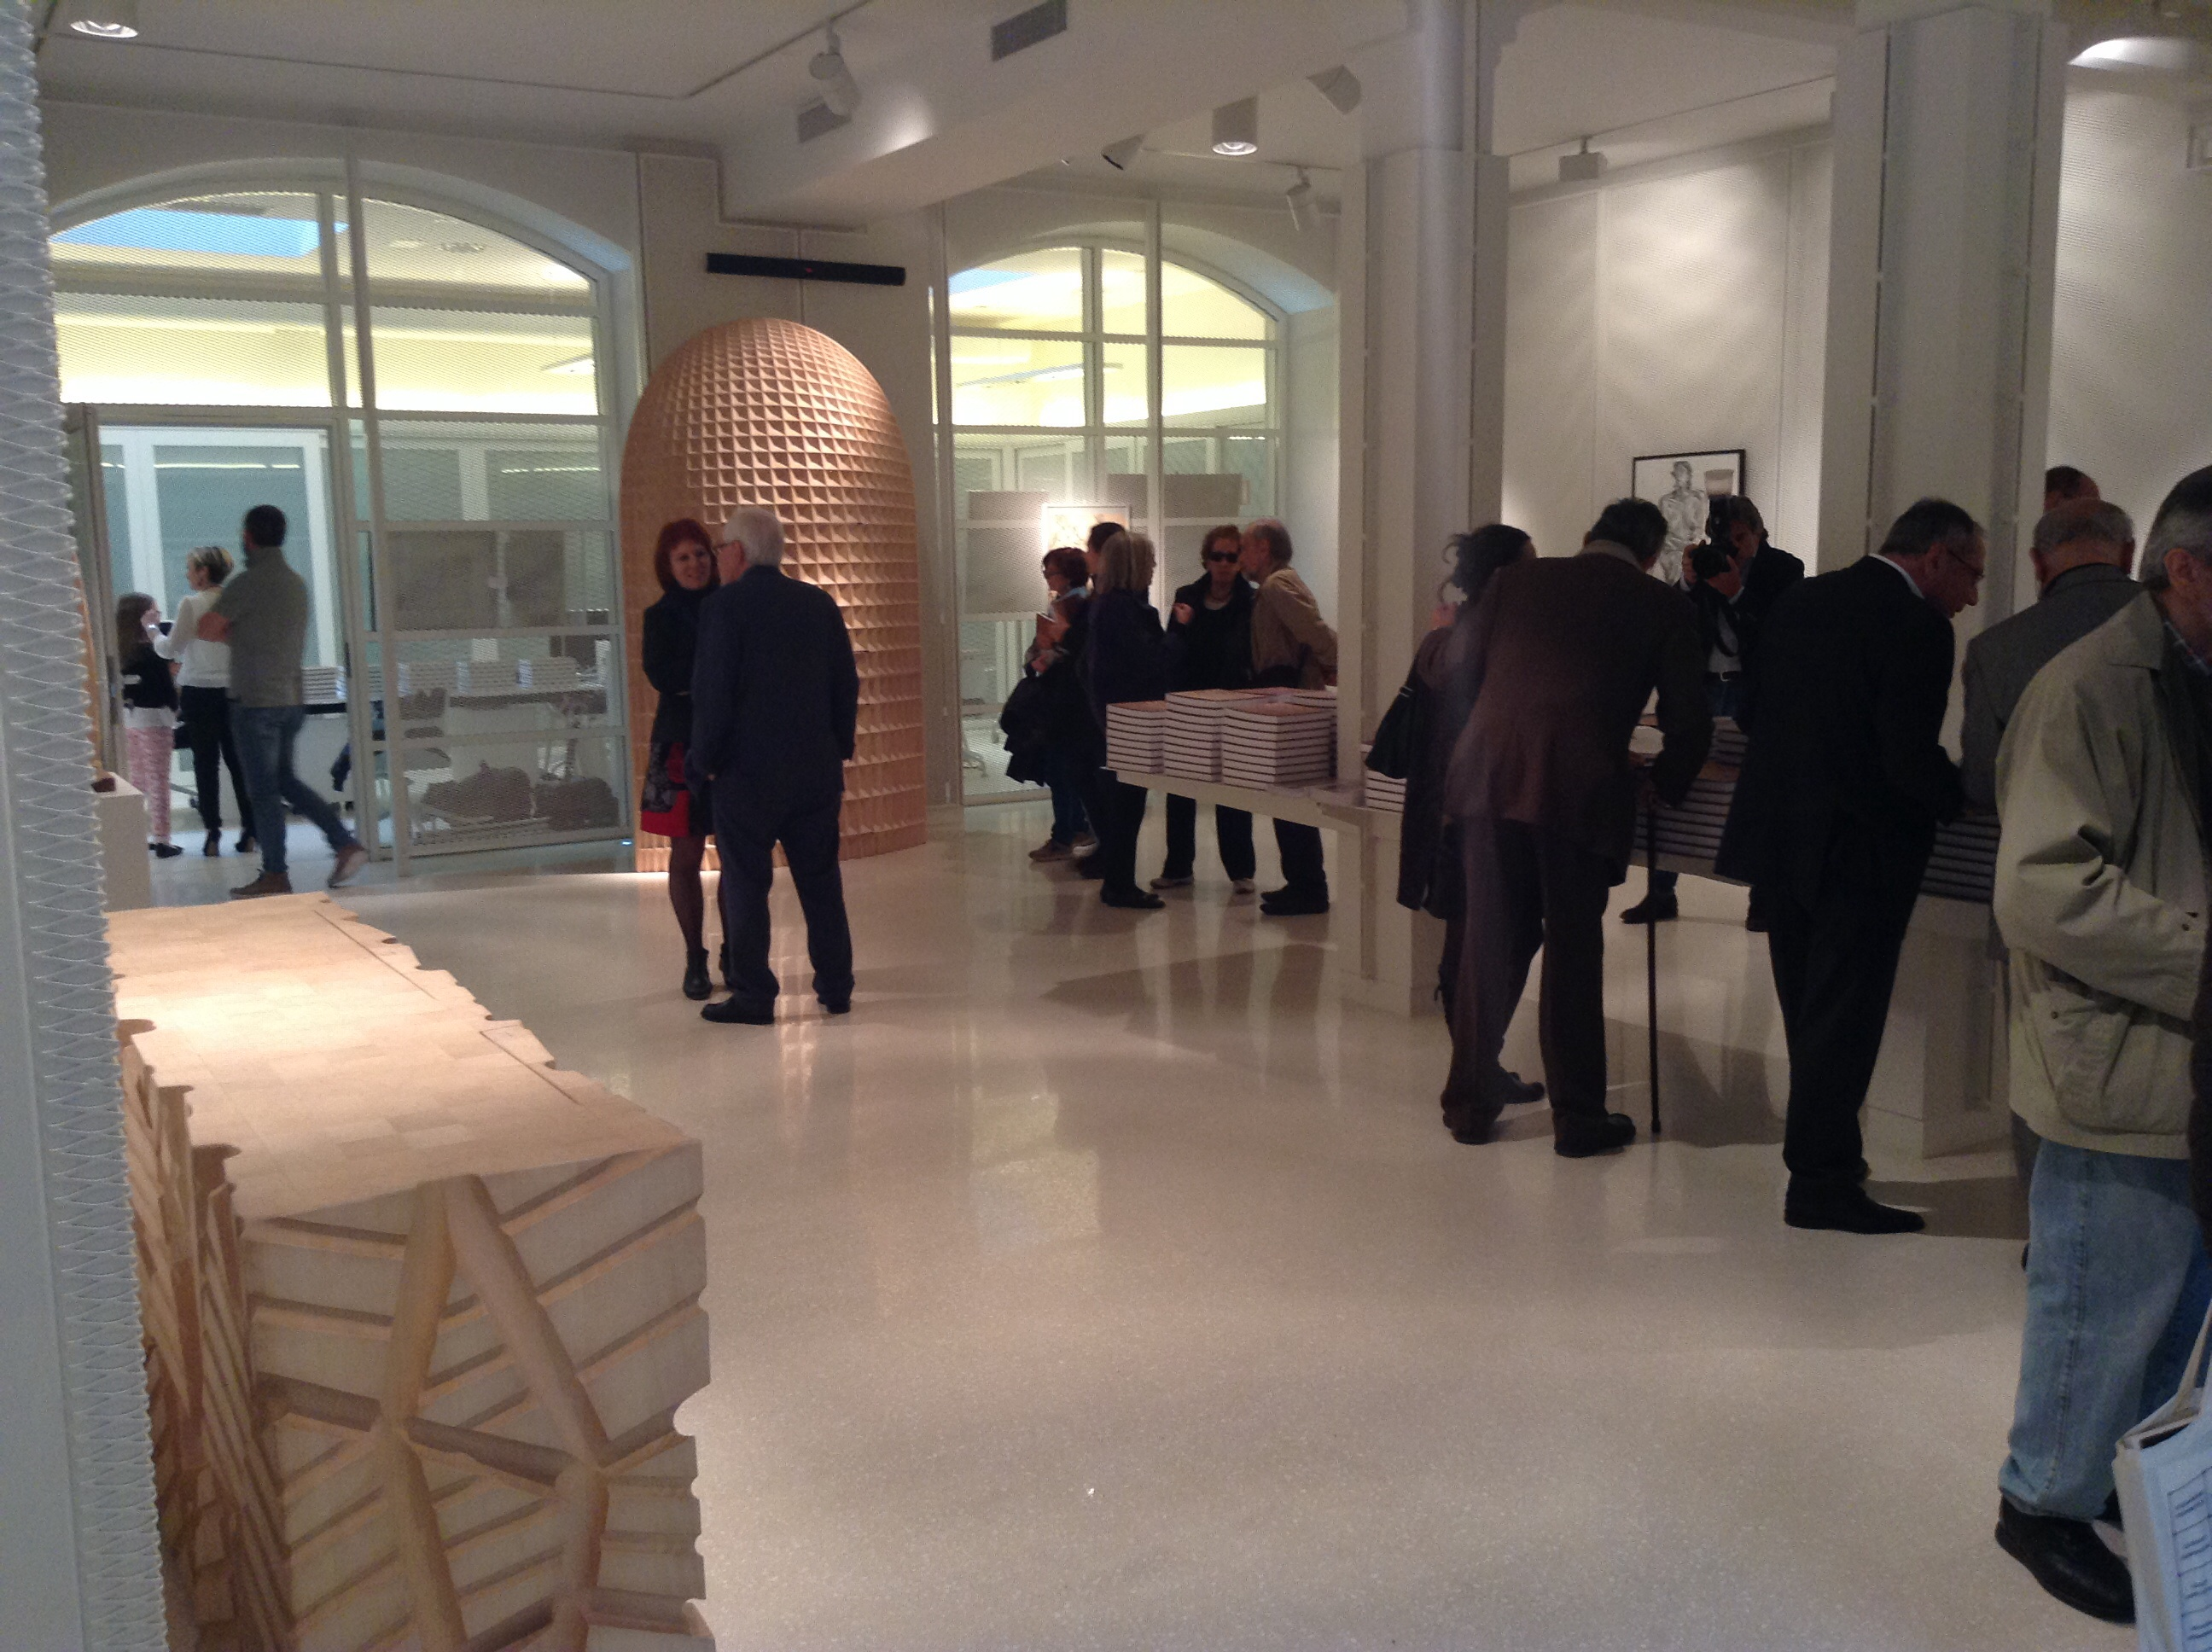 Great turnout at the Giuseppe Rivadossi's exhibition